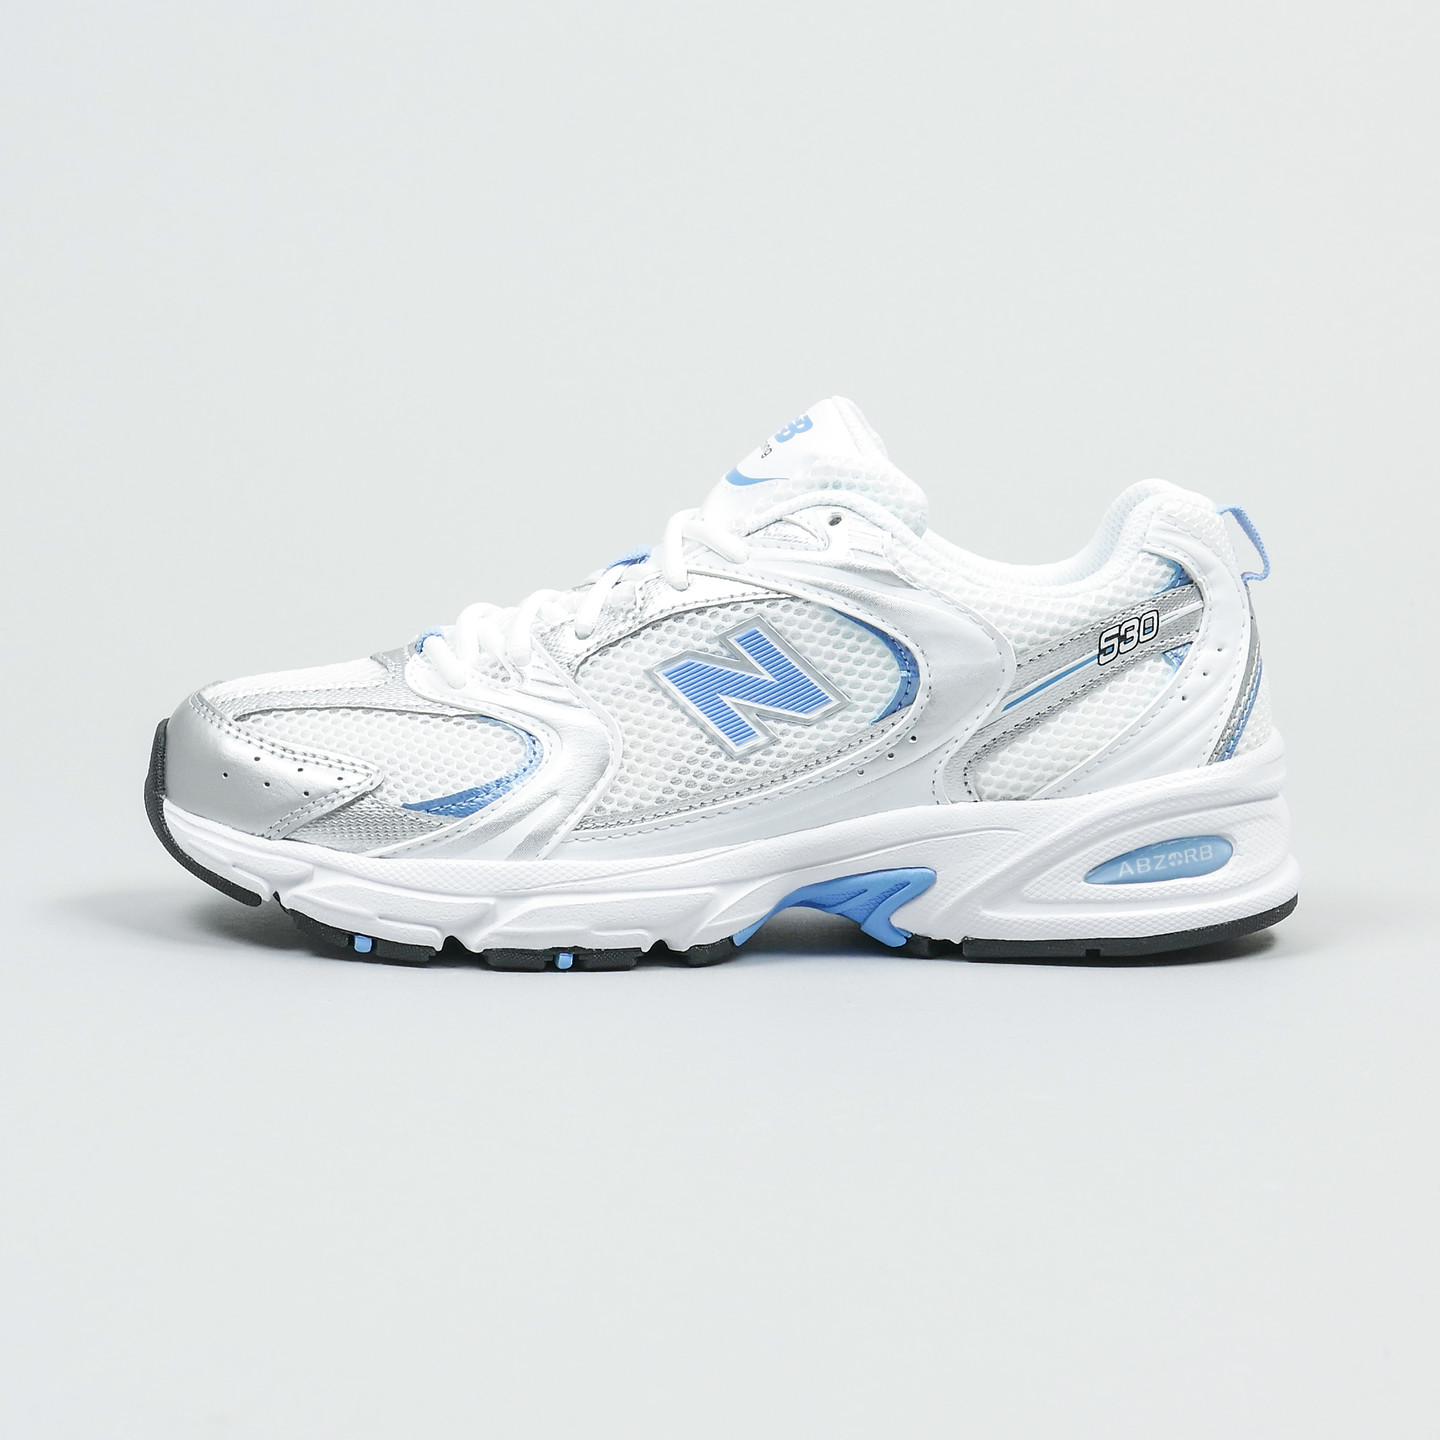 New Balance MR530 White / Baby Blue / Silver MR530MIC